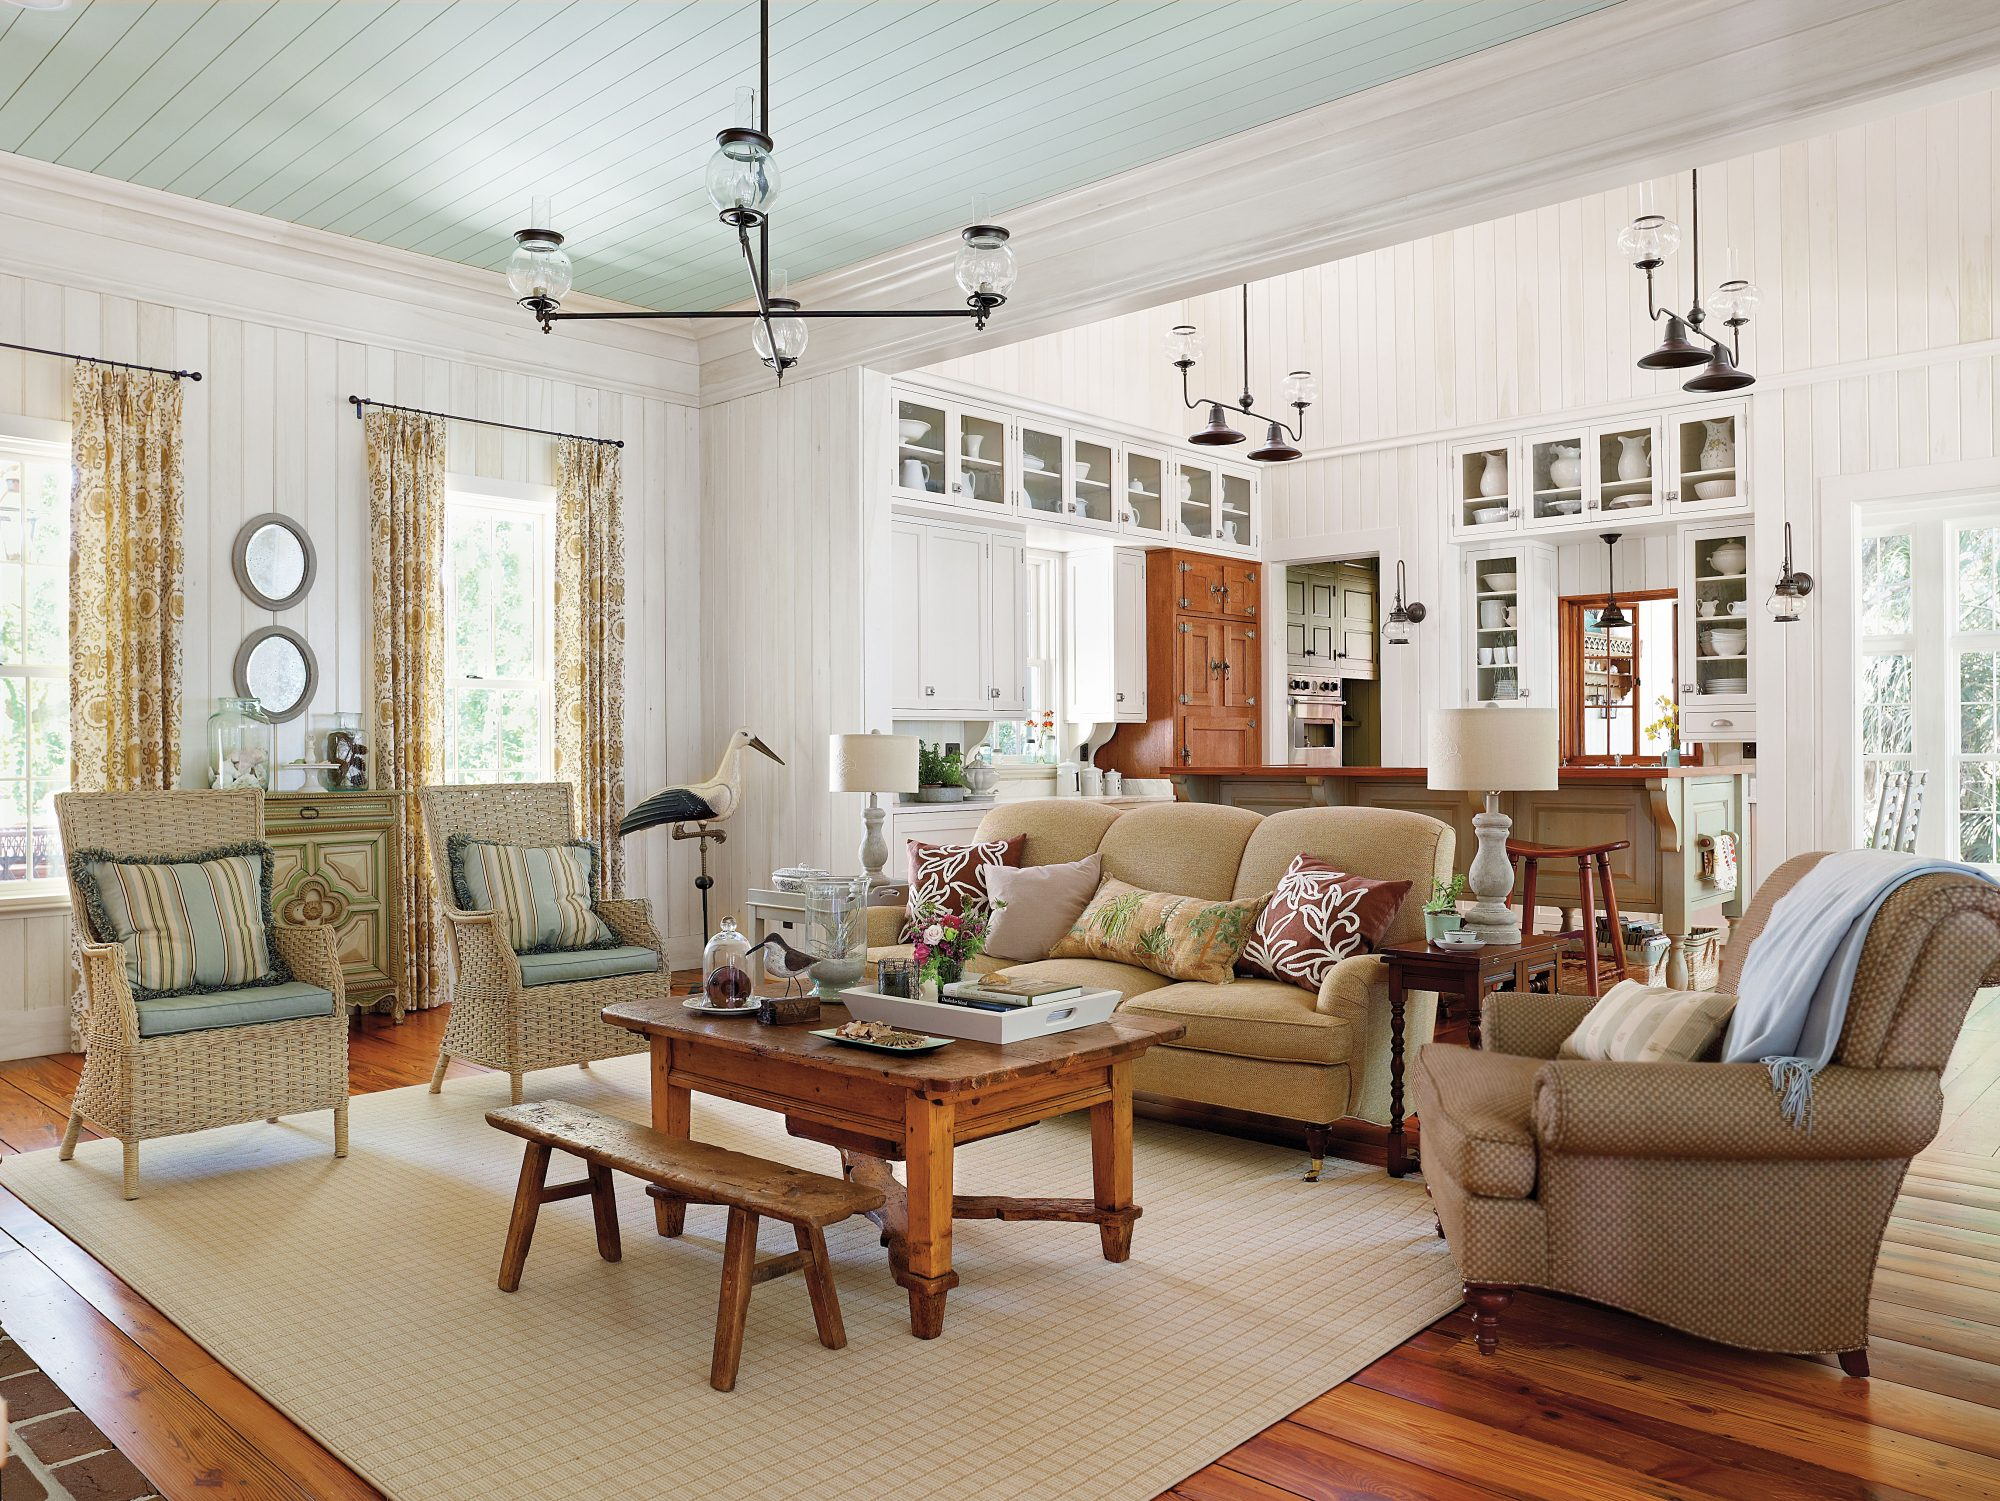 Creating a Vintage Look in a New Home - Southern Living